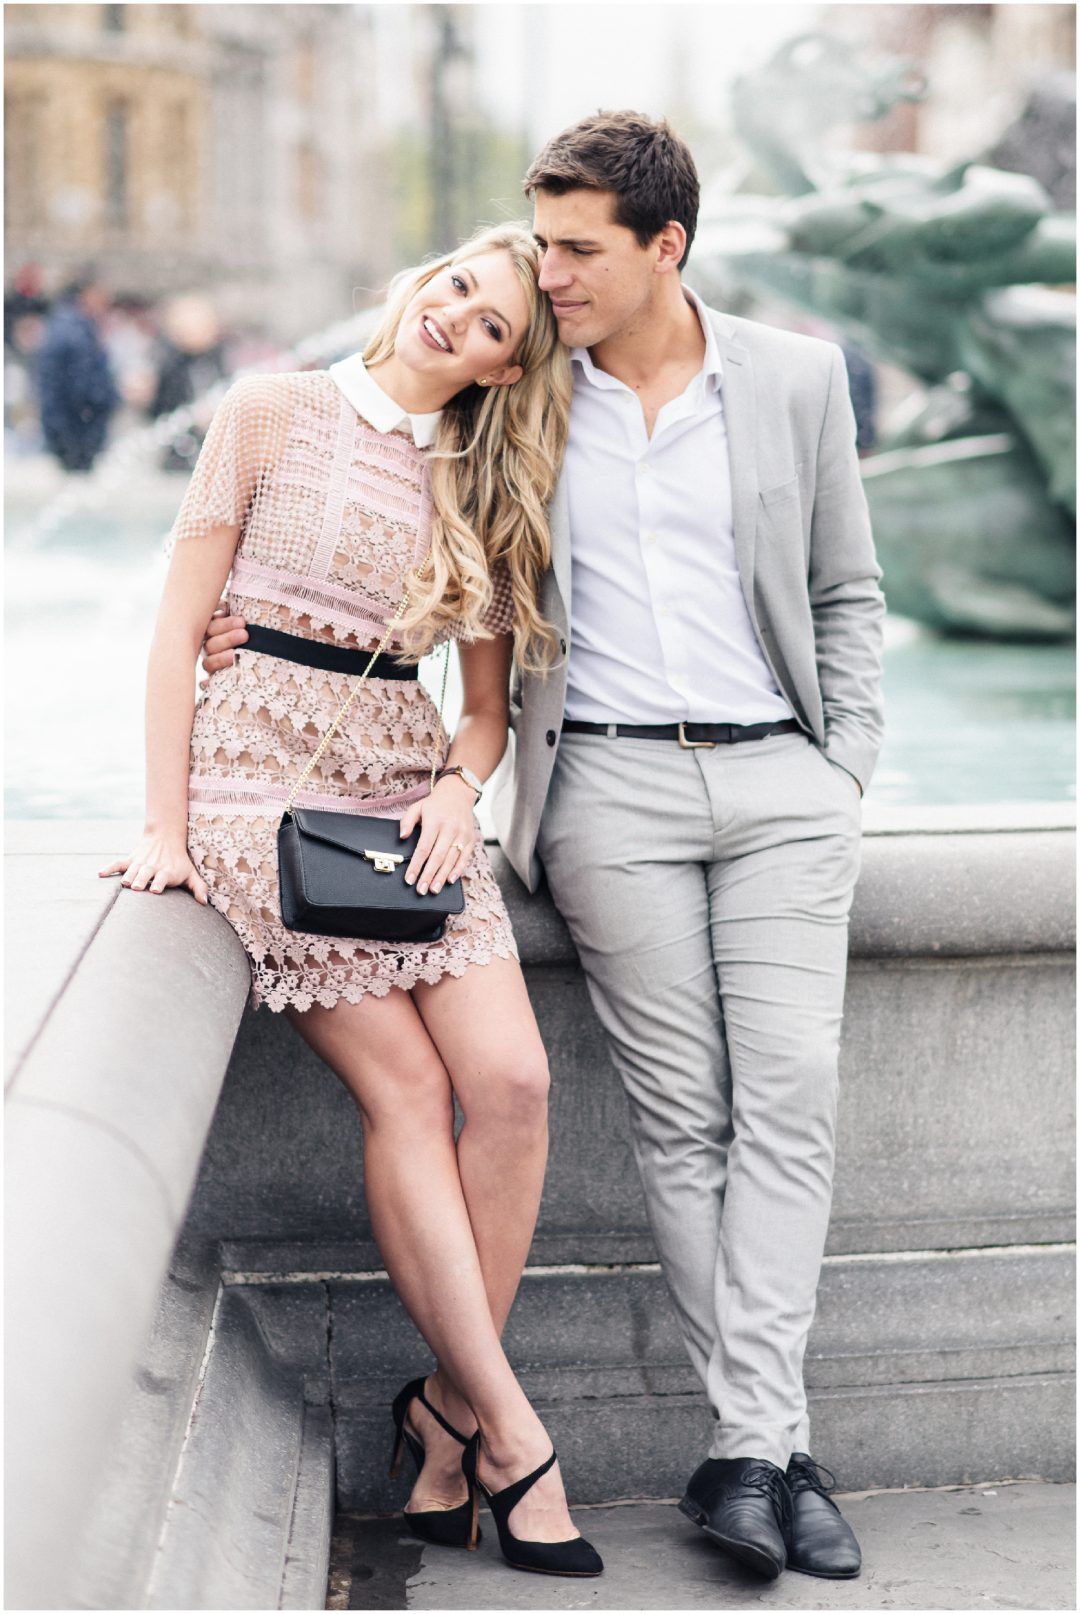 Prettiest Engagement shoot in Trafalgar square, London - lifestyle, engagement - Nkima Photography 2017 London Engagement 0029